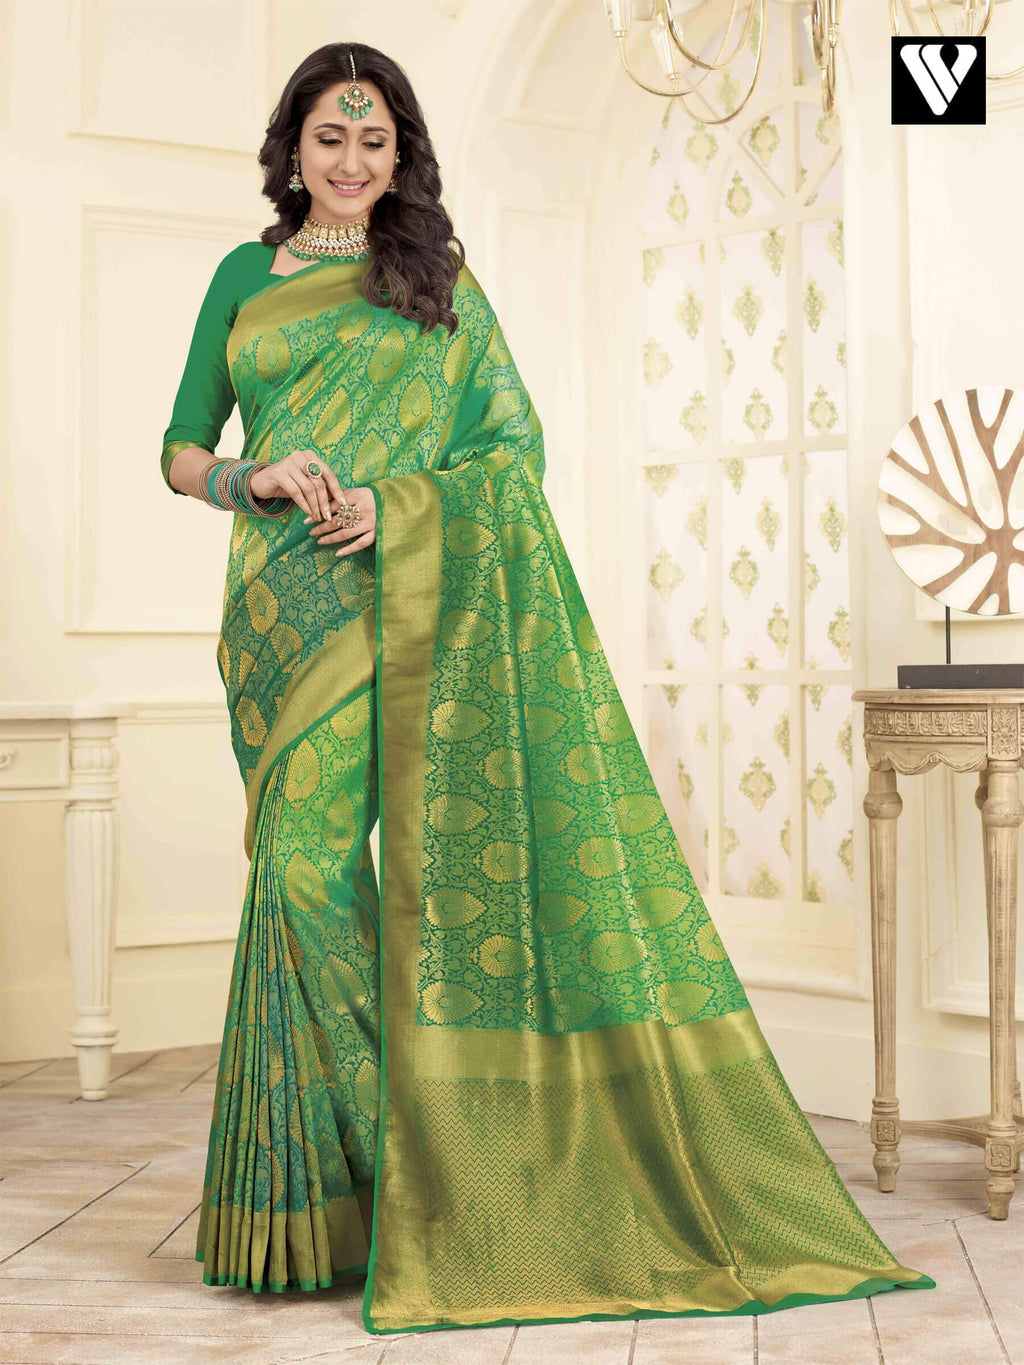 Designer Wedding Wear Banarasi Art Silk Sarees In Green Gold